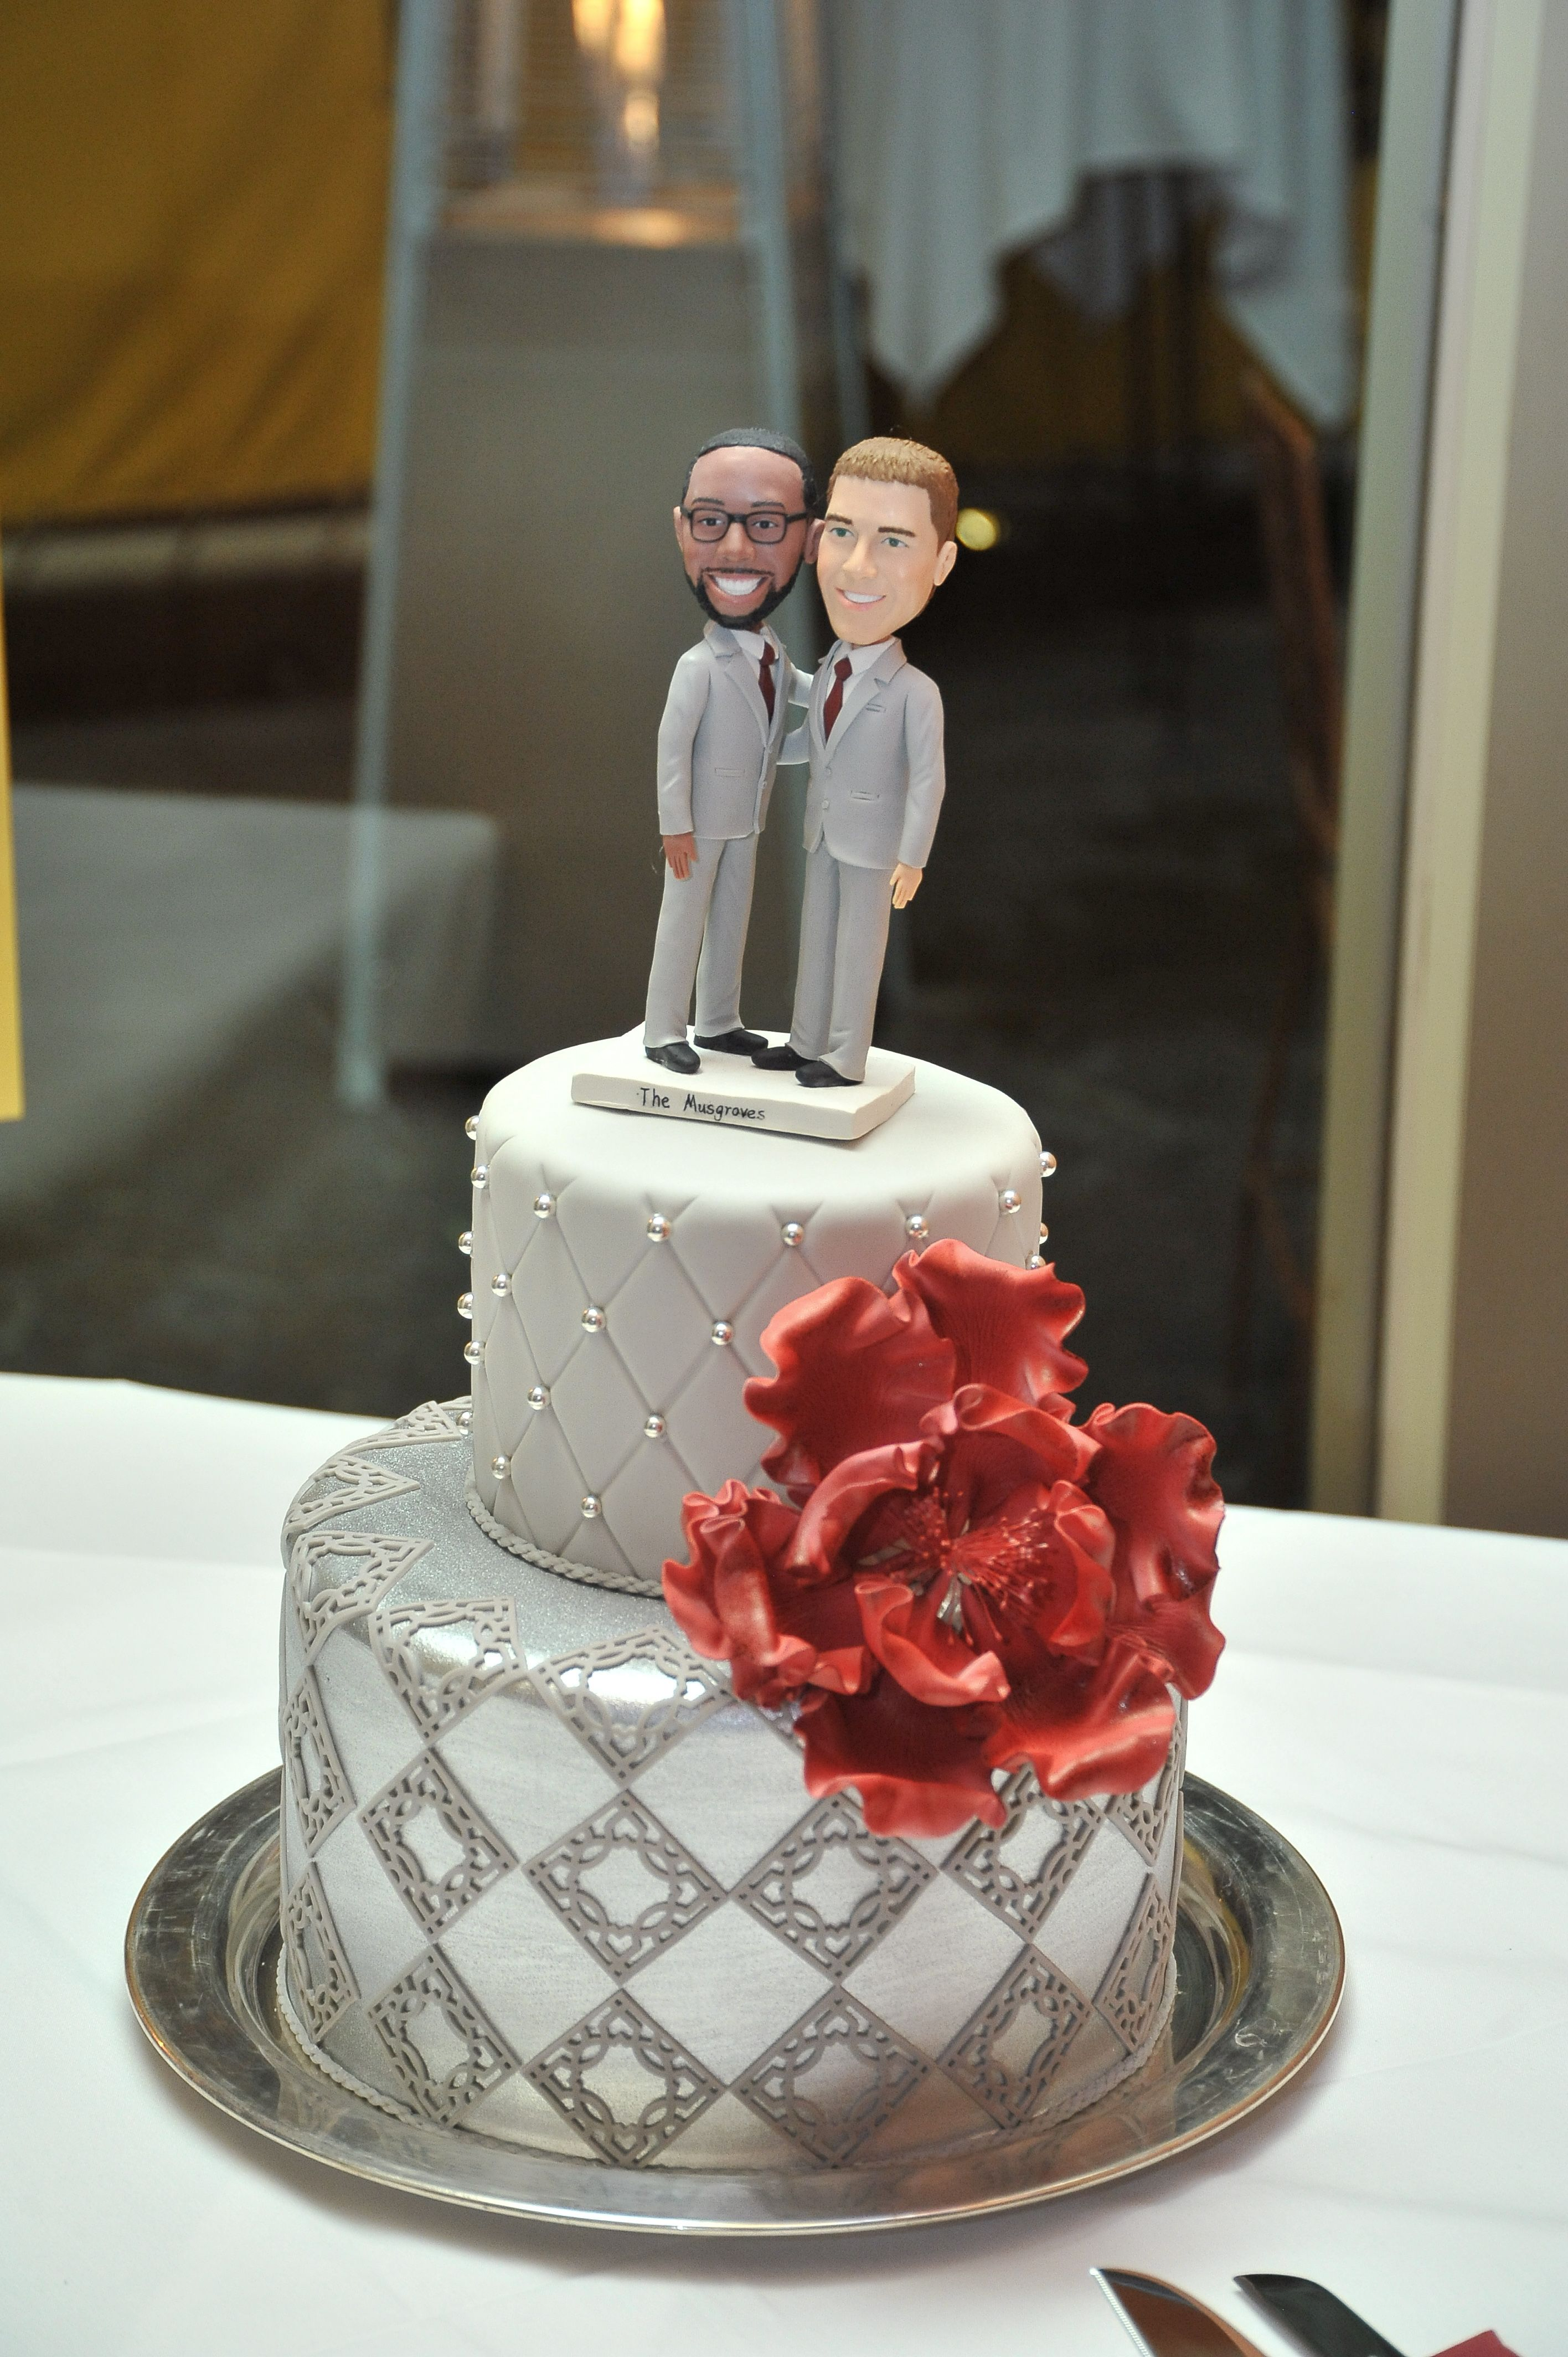 A custom wedding cake makes for a stunning statement on